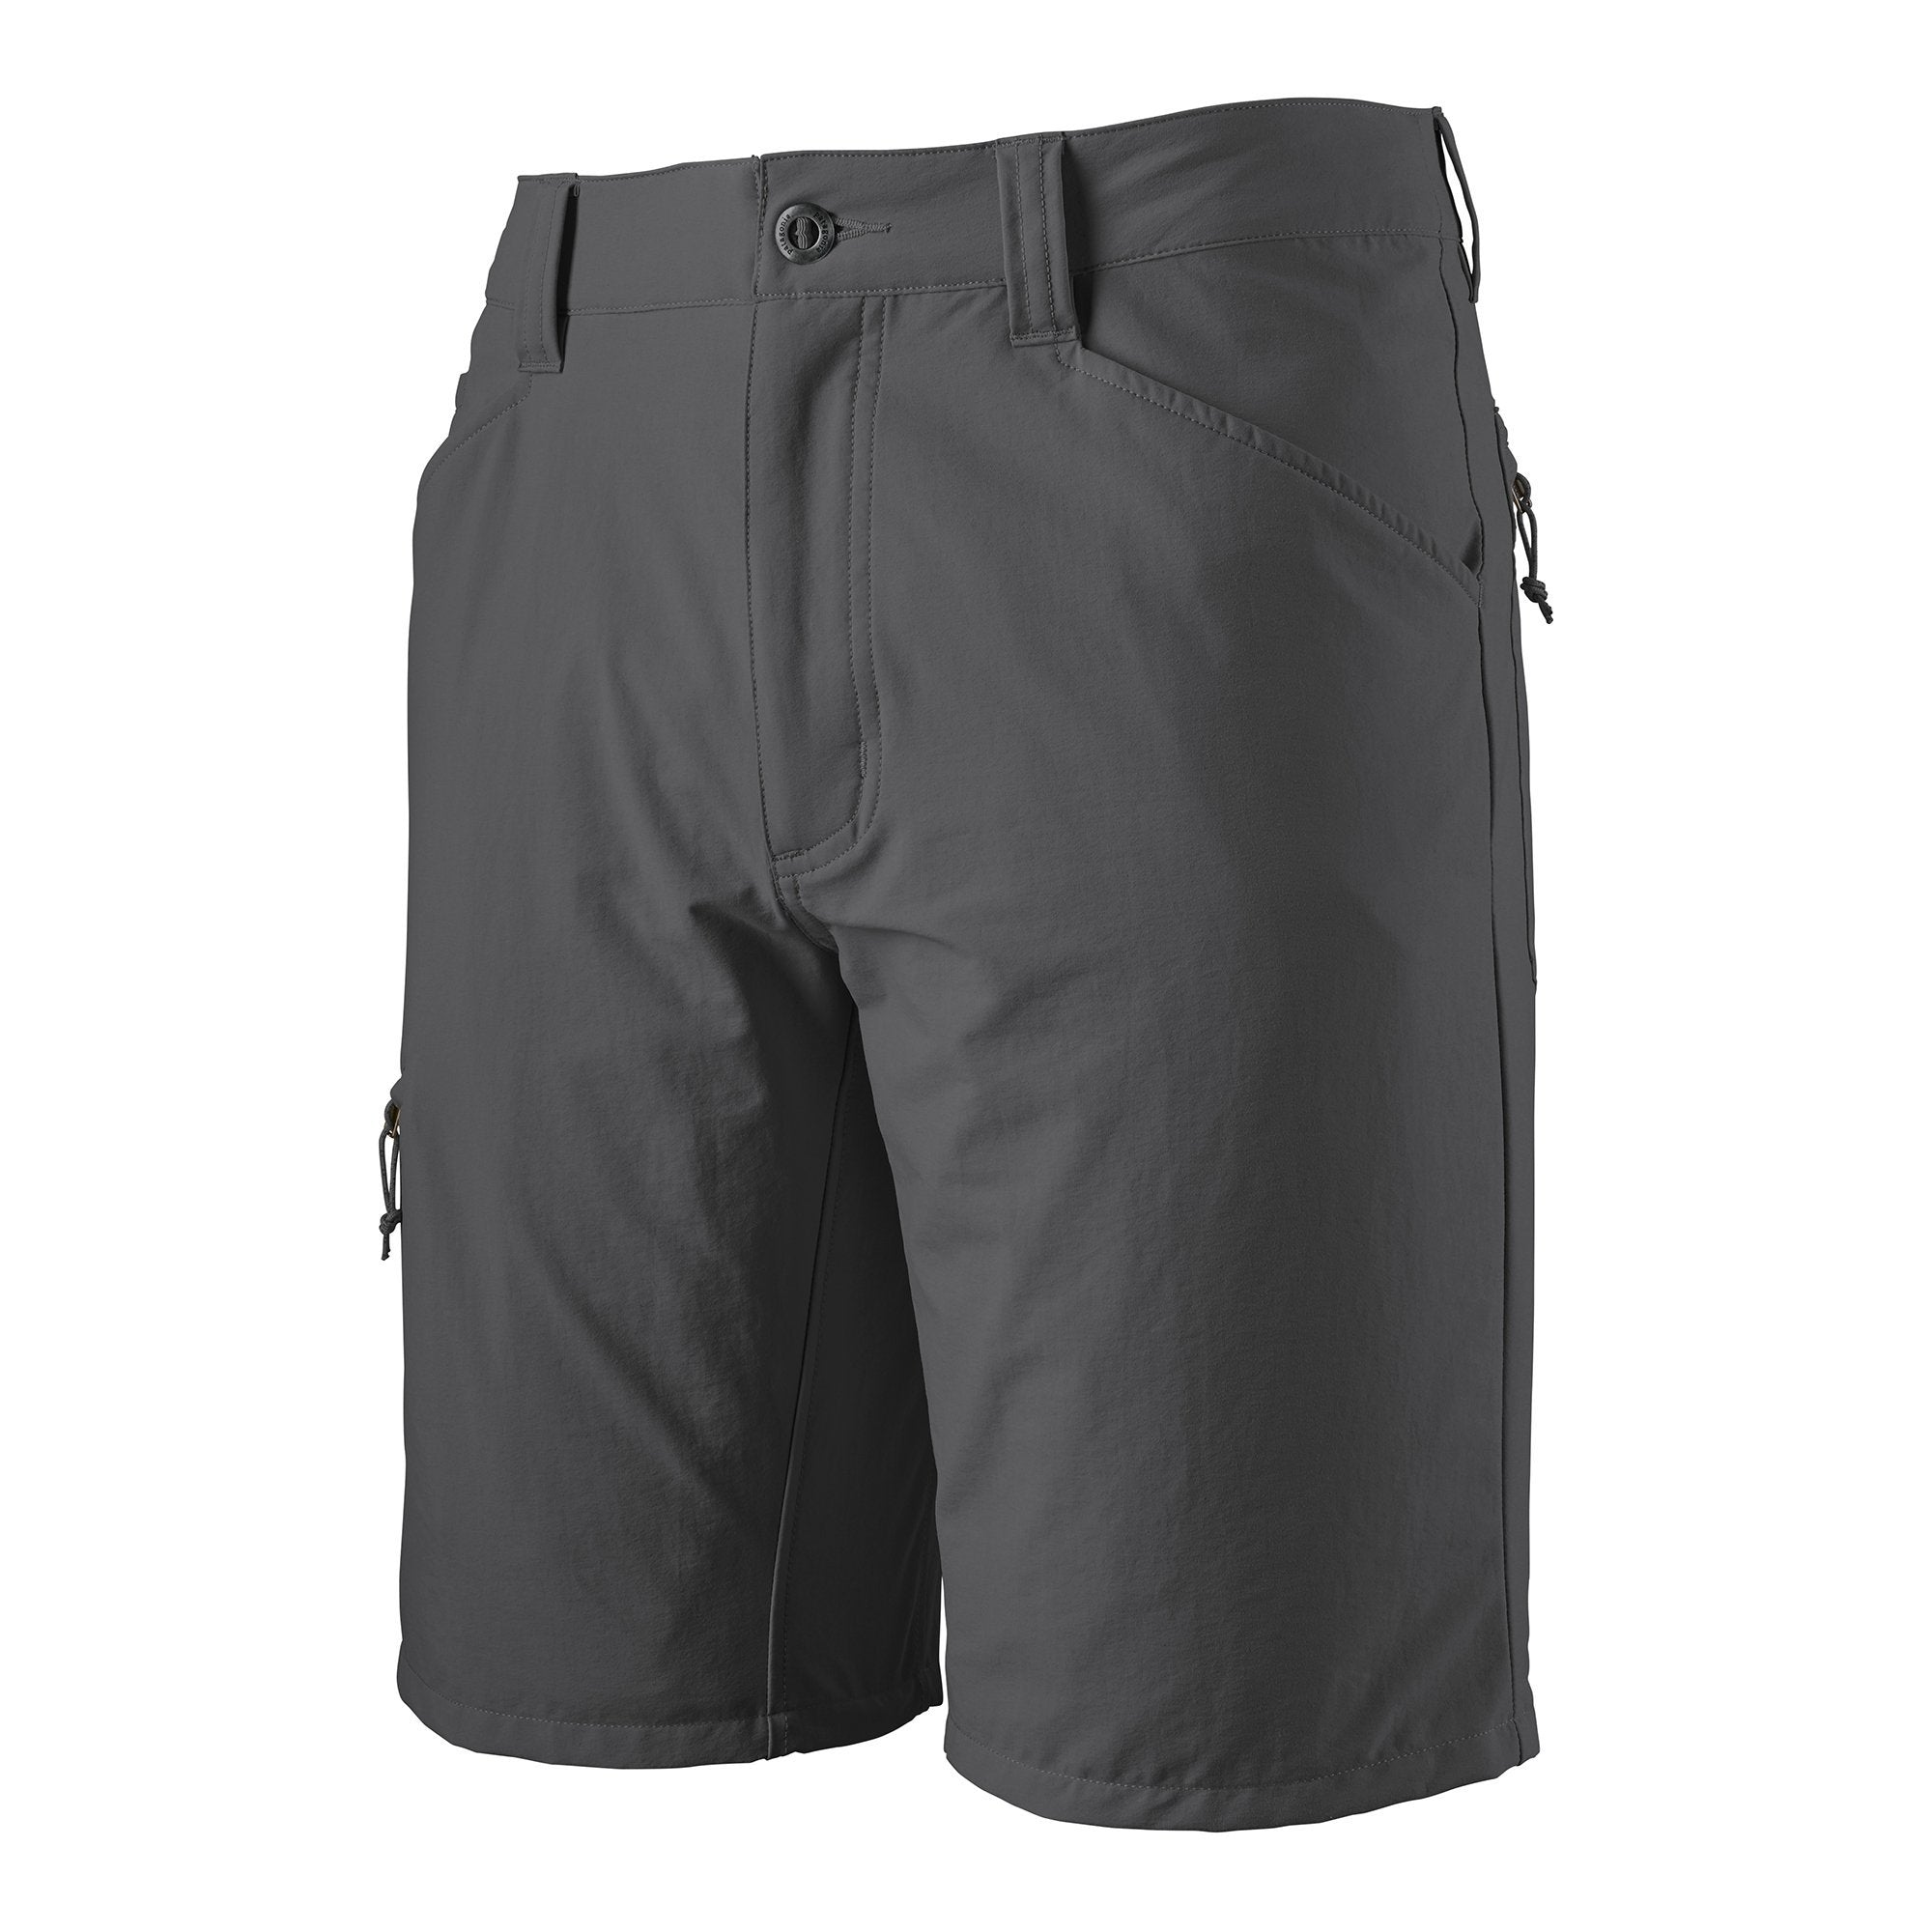 Quandary Shorts 10 inches - Forge Grey - Herr - Vindpinad